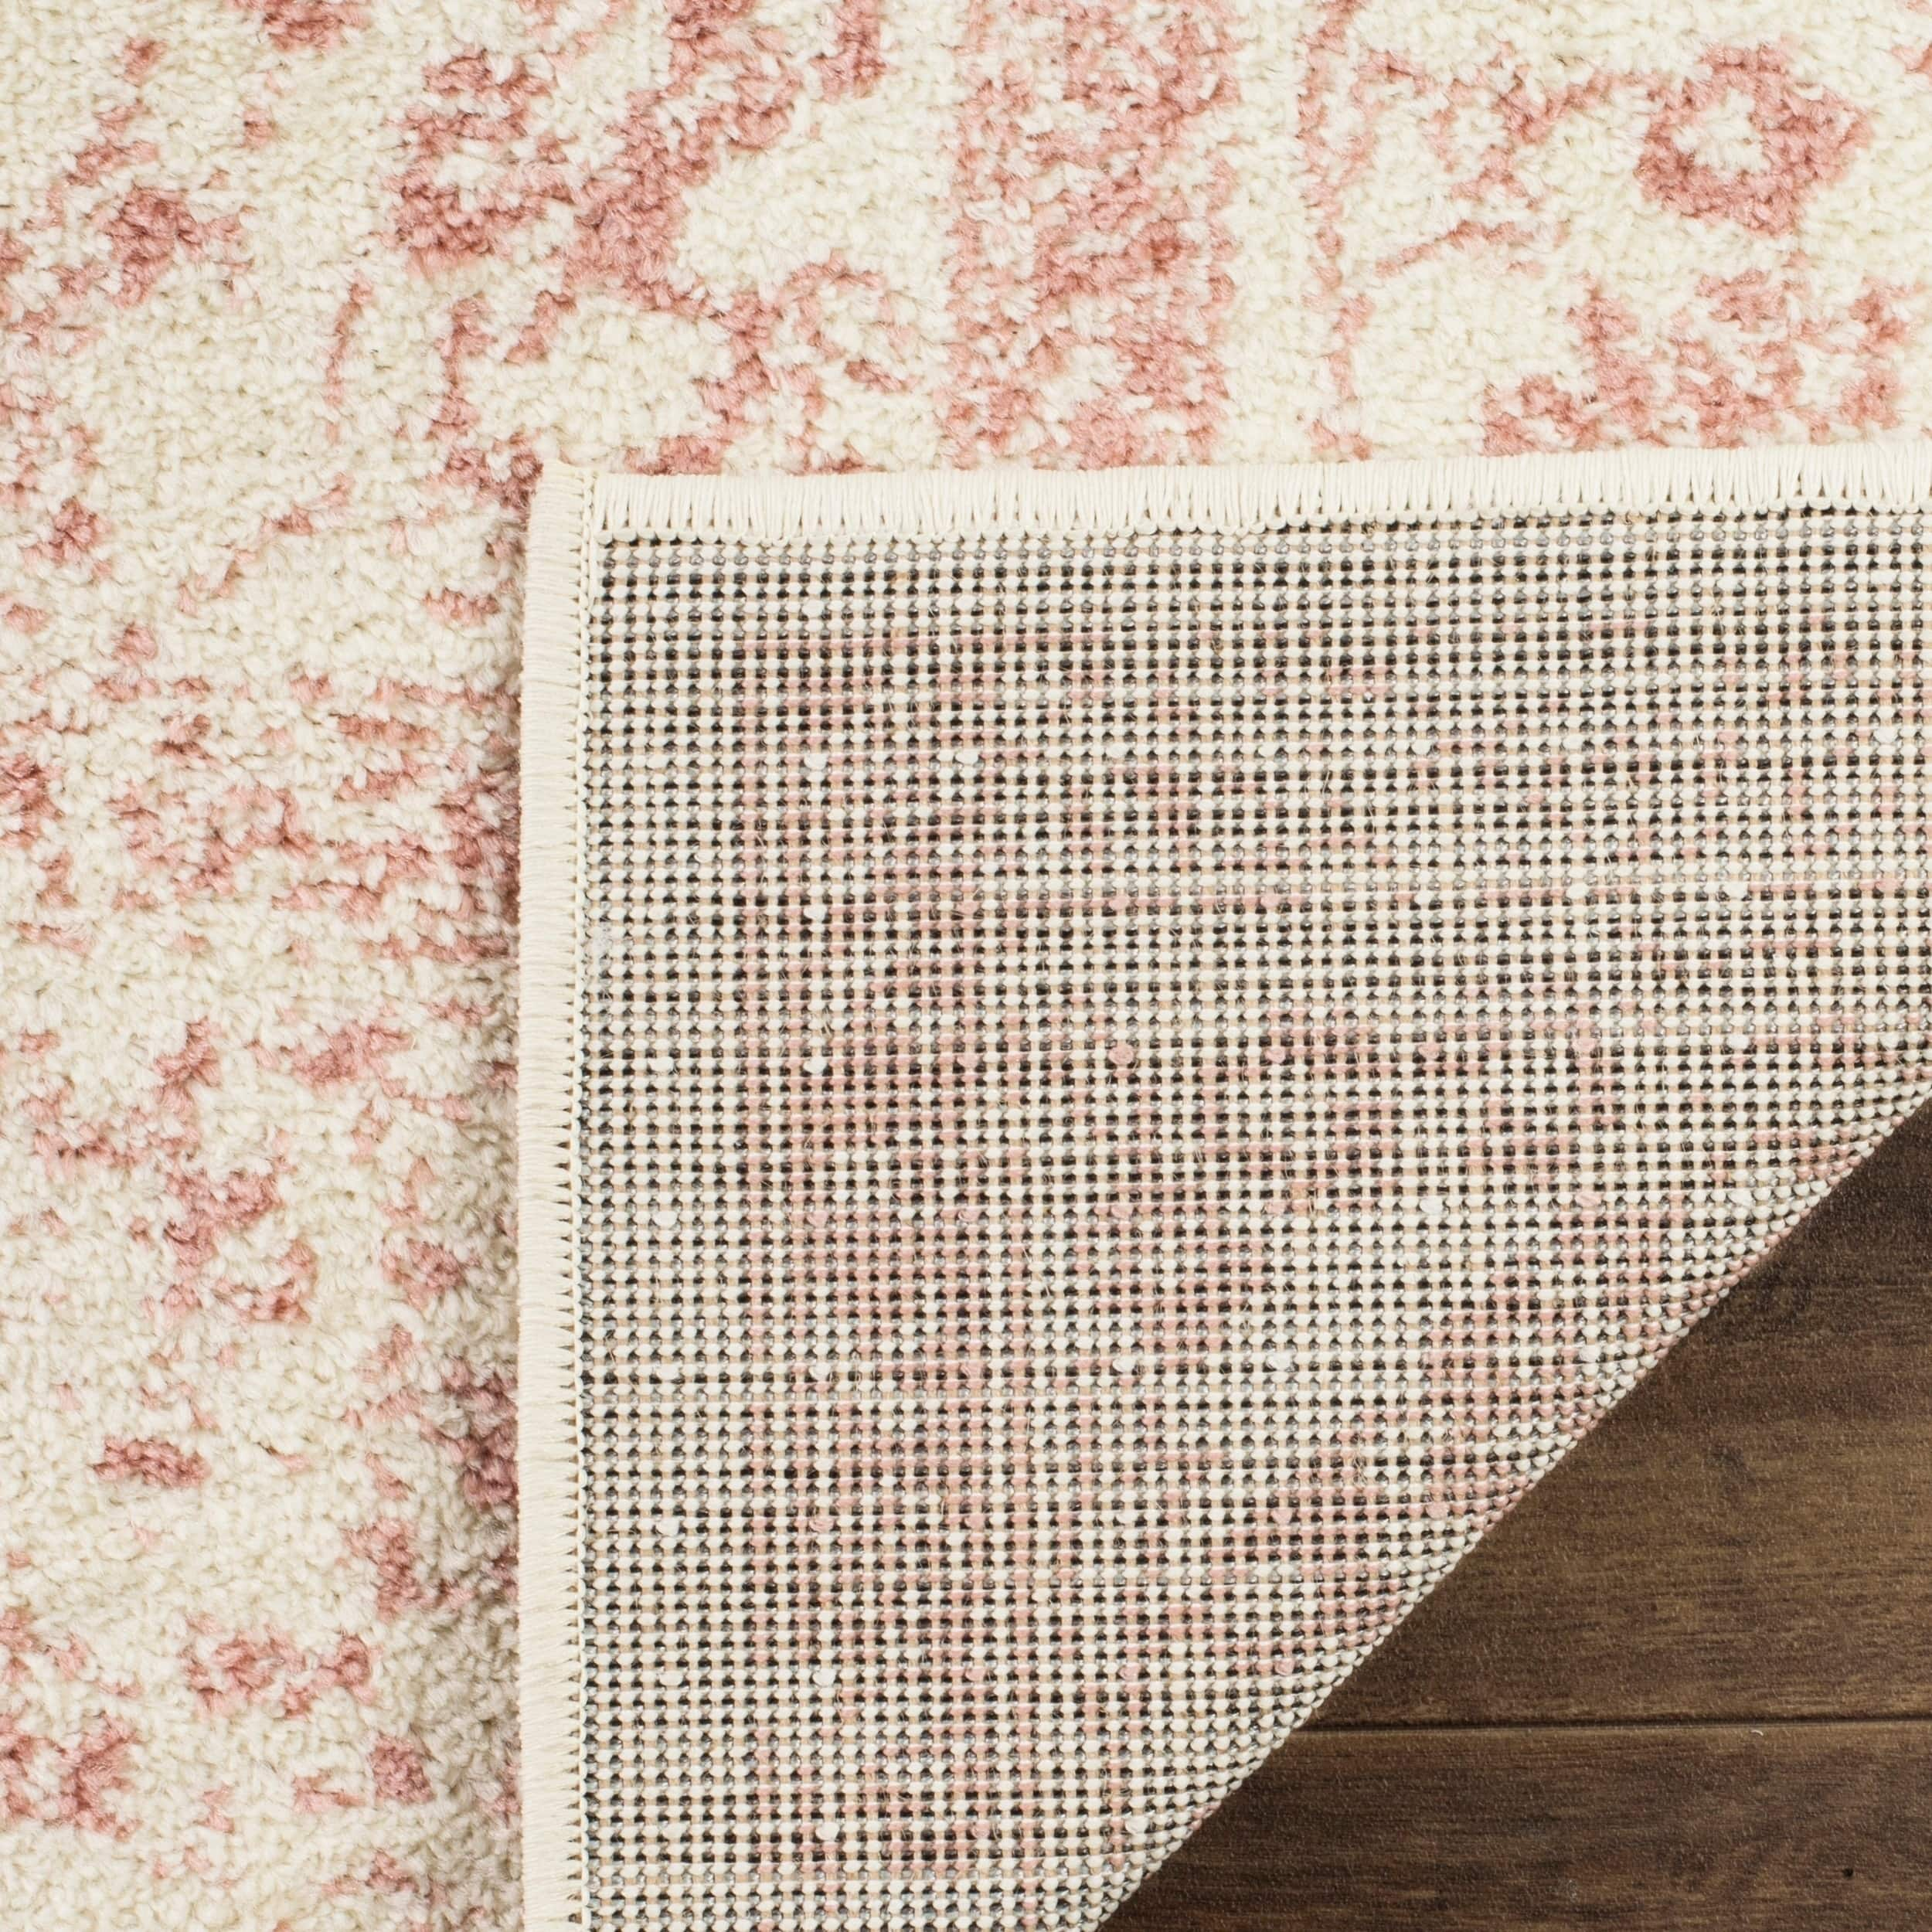 Buy Safavieh Area Rugs Online At Overstock Our Best Rugs